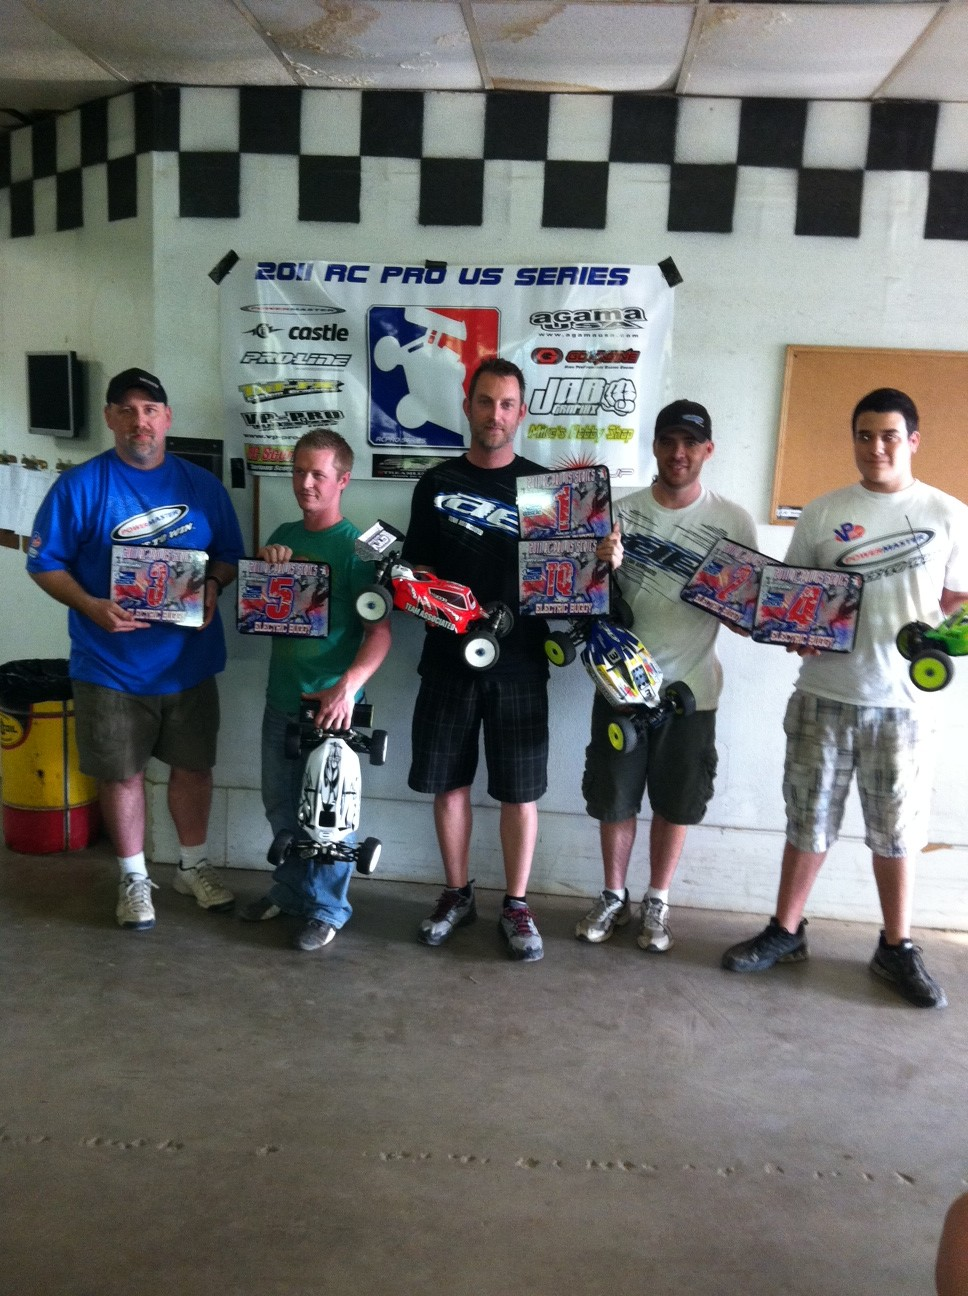 David Joor Wins Again At Round 2 Of The 2011 RC Pro Series Held At Indy RC